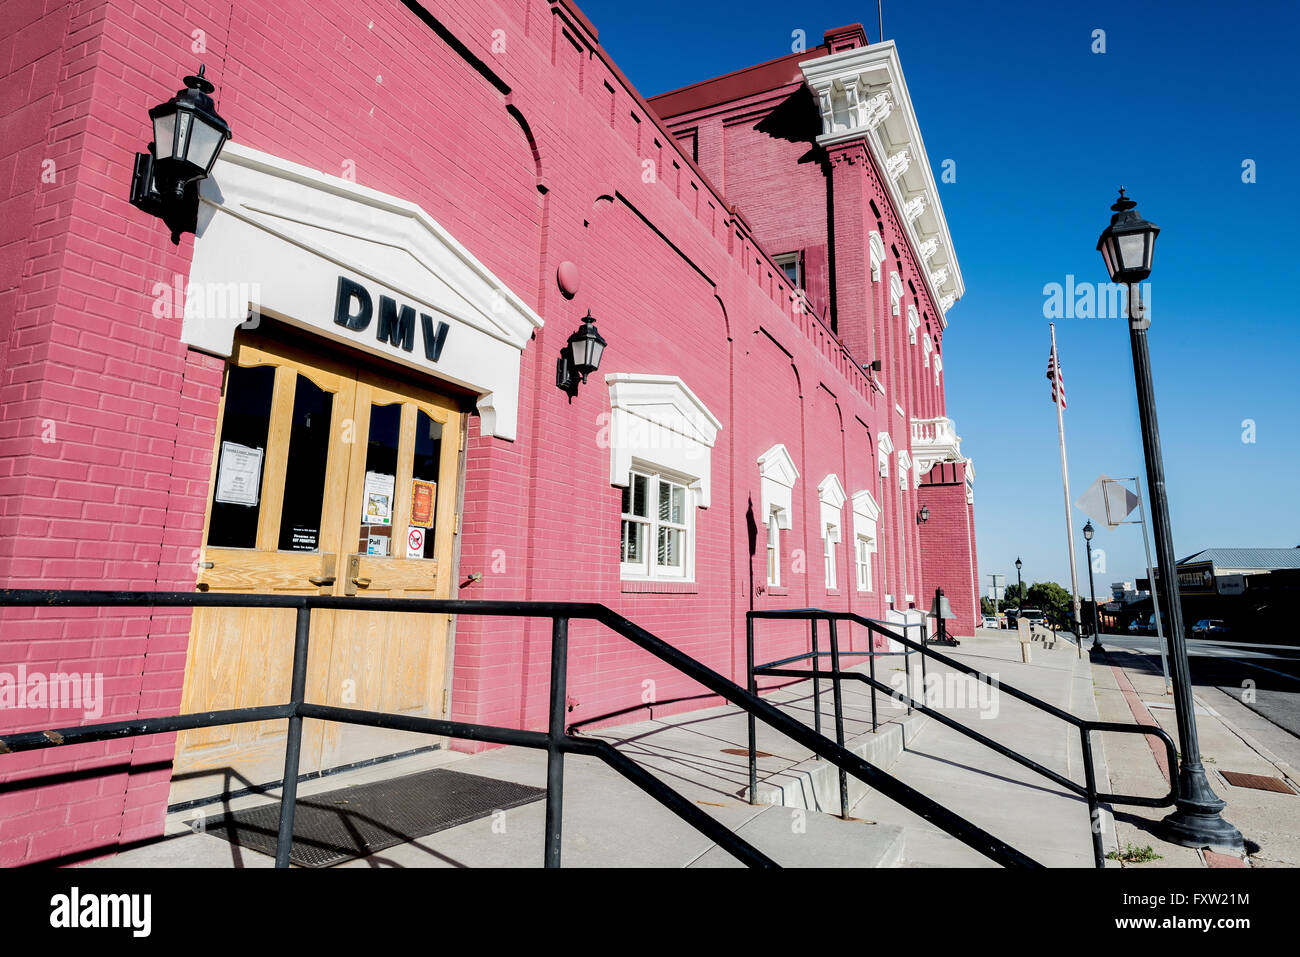 Historic red brick building in downtown Eureka, Nevada, United States, that houses the DMV (Department of Motor - Stock Image